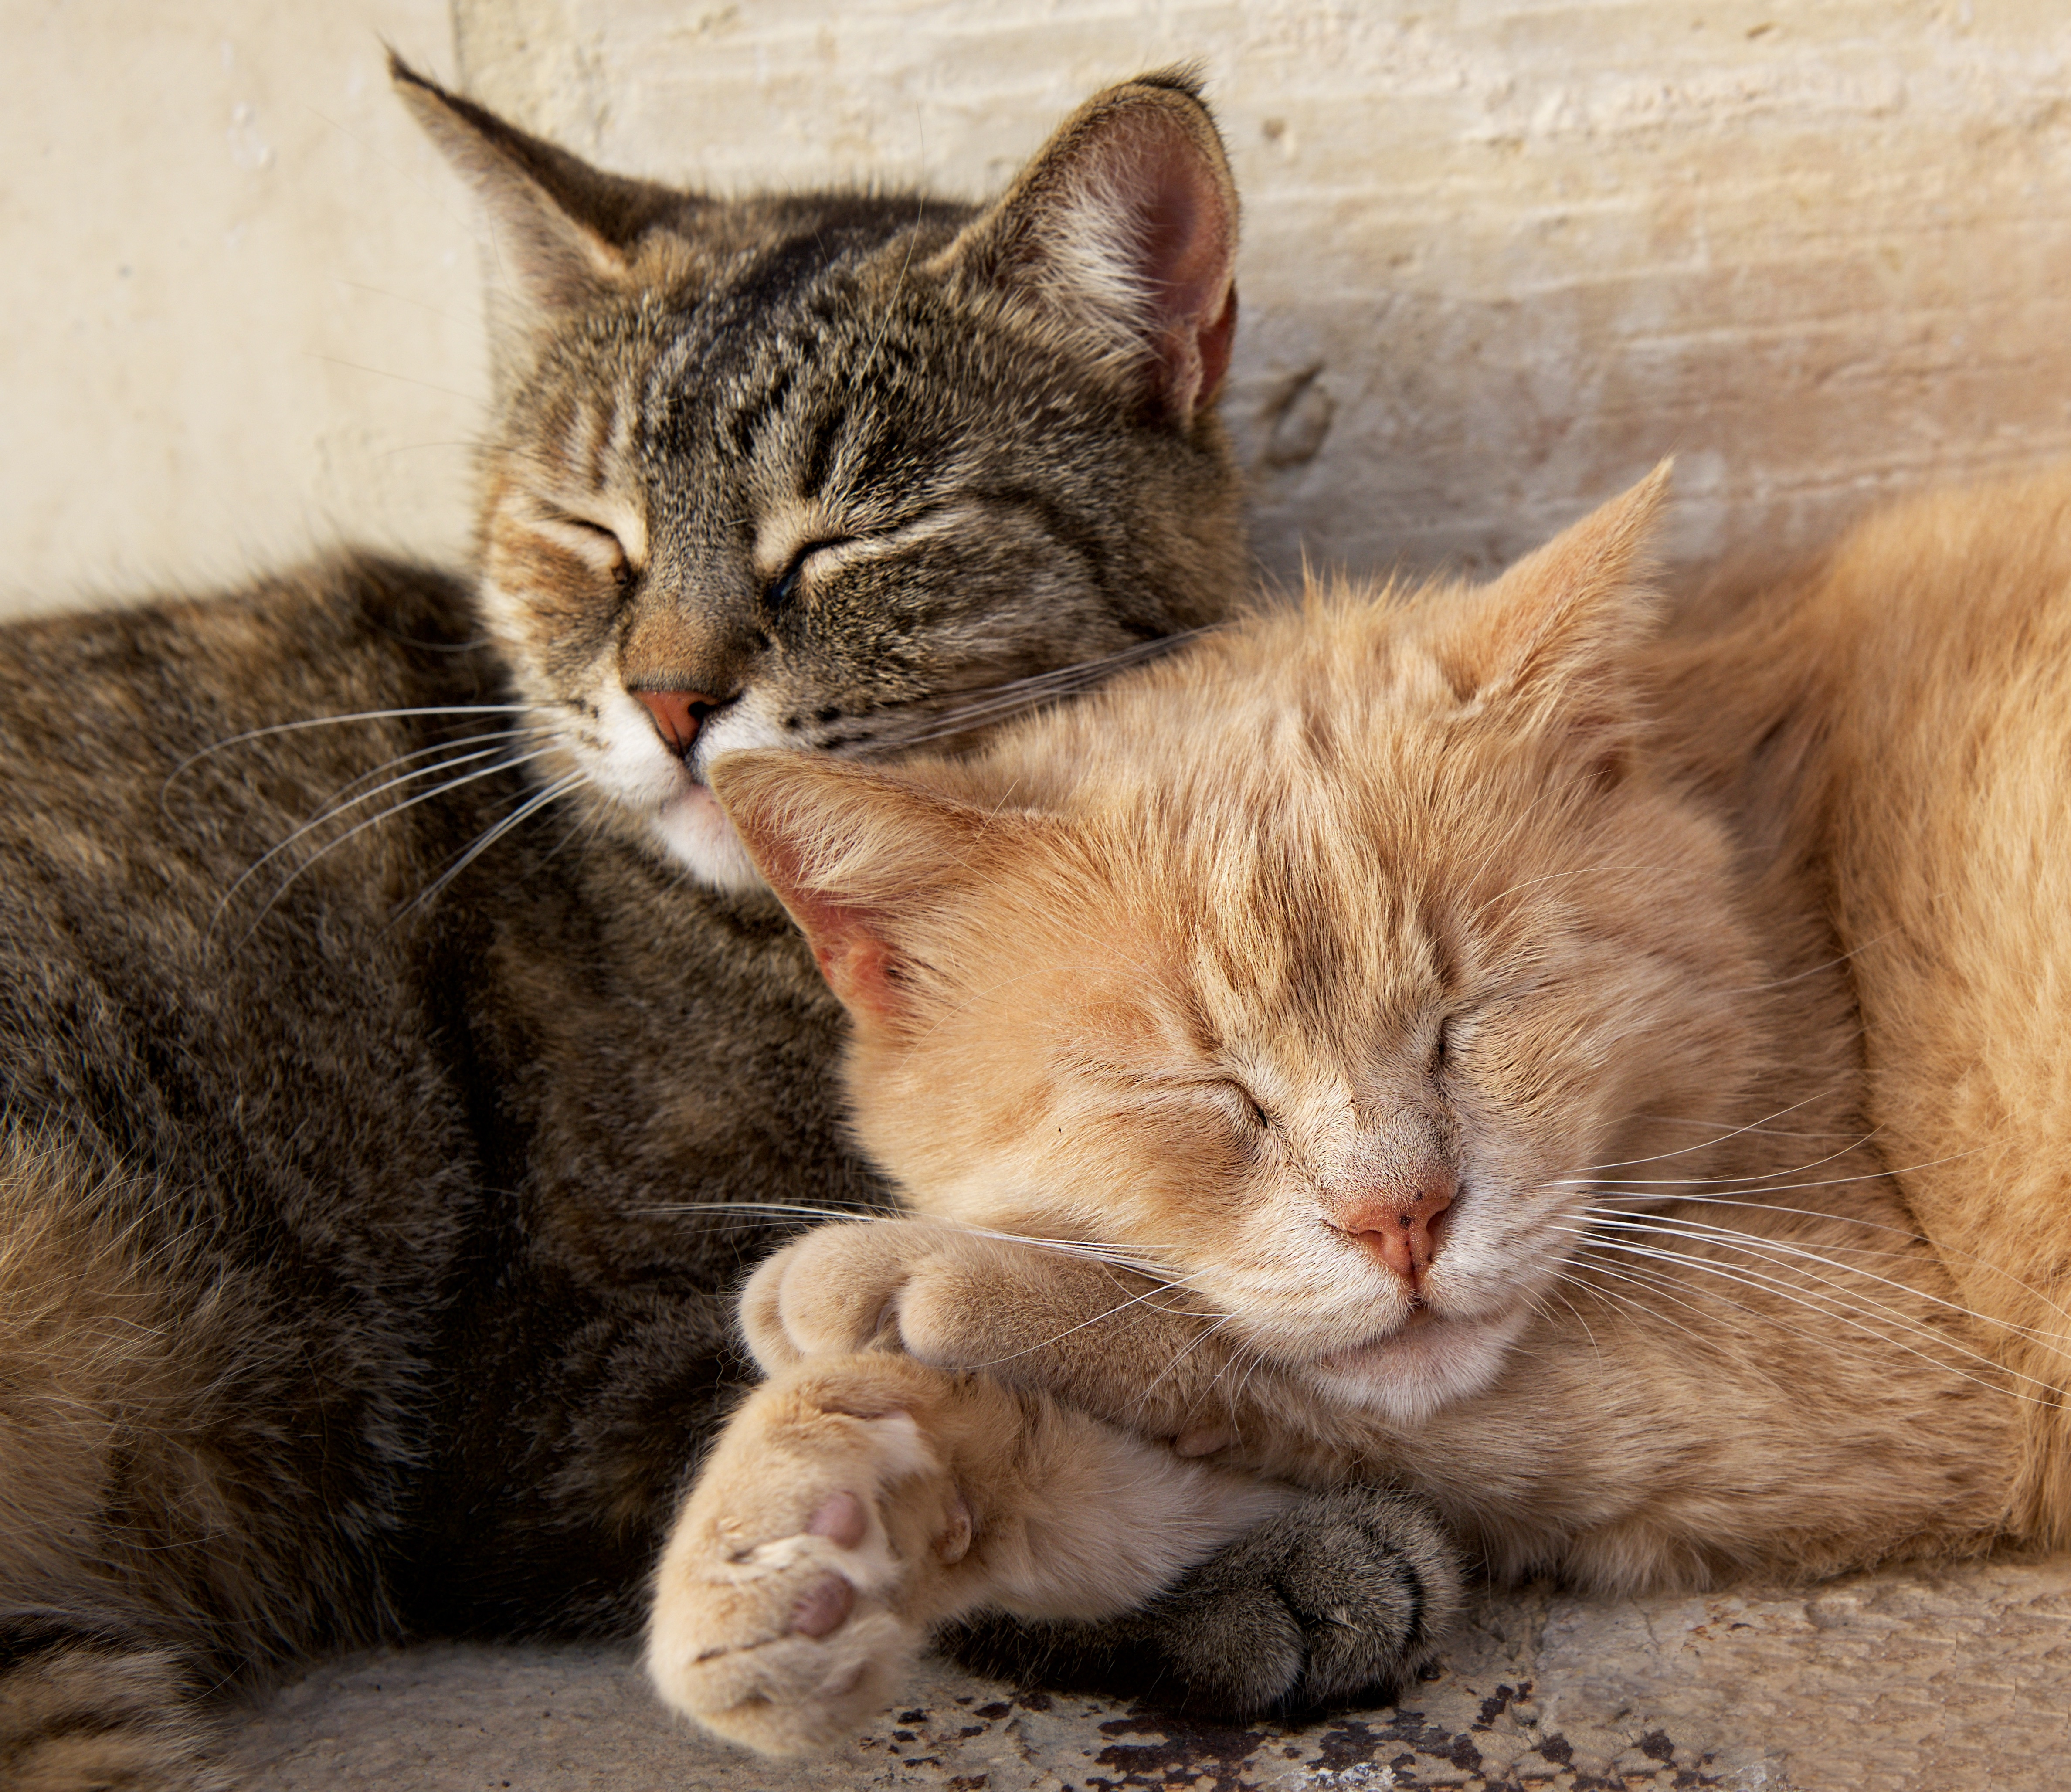 bigstock-Portrait-Of-Two-Cats-Brown-An-239843755